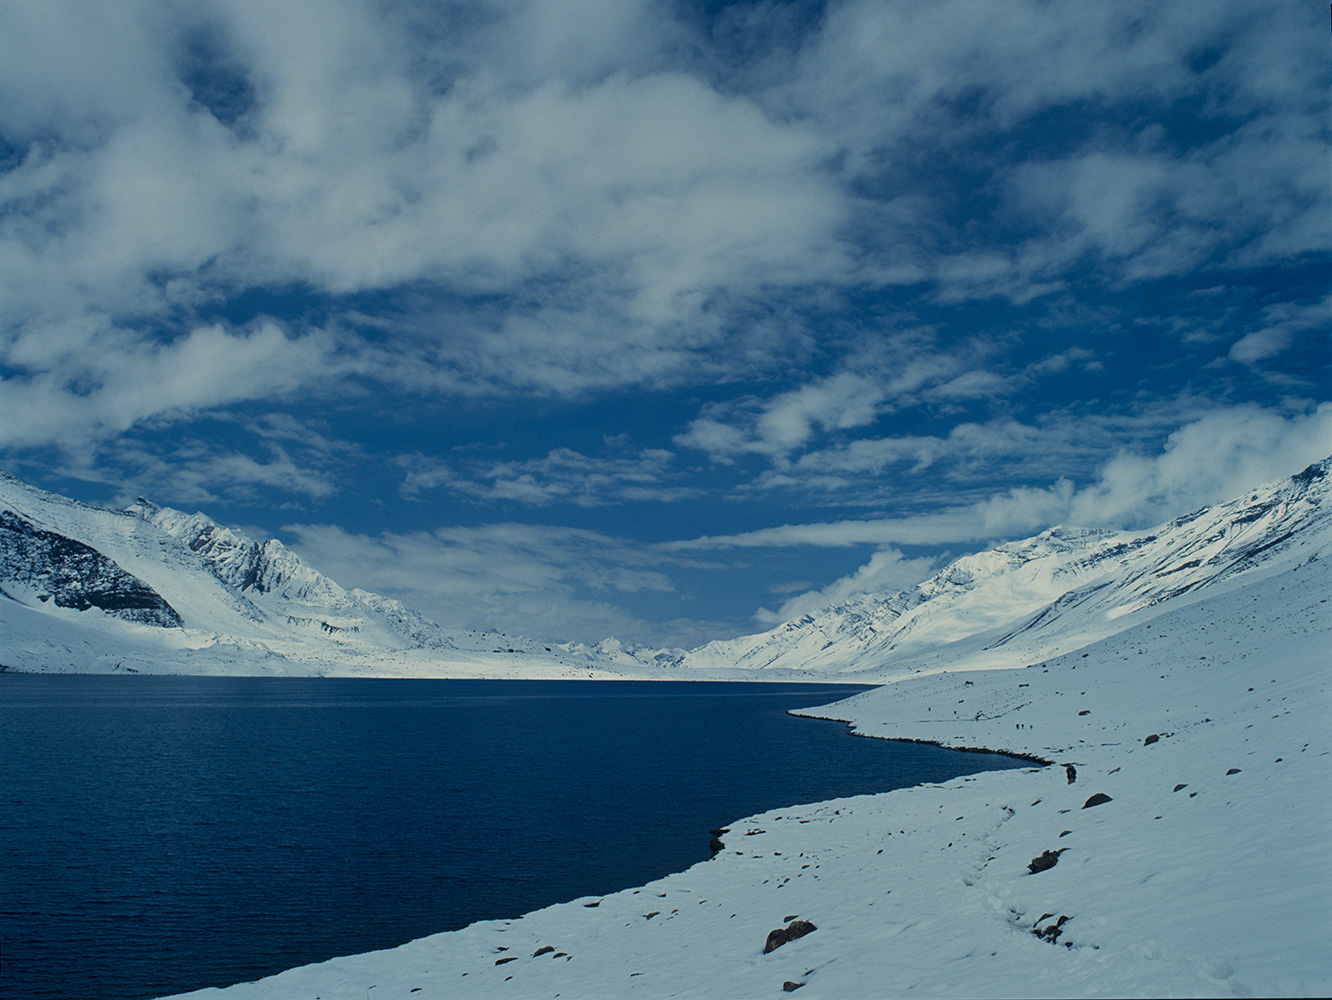 This lake lies on the Karumbar Pass, between Chitral and Ishkoman in the most remote corner of Pakistan's mountainous north. It is just a few kilometres from Afghanistan. Seen here after a summer snowstorm in the month of July.Bronica ETRSi, Fuji Velvia